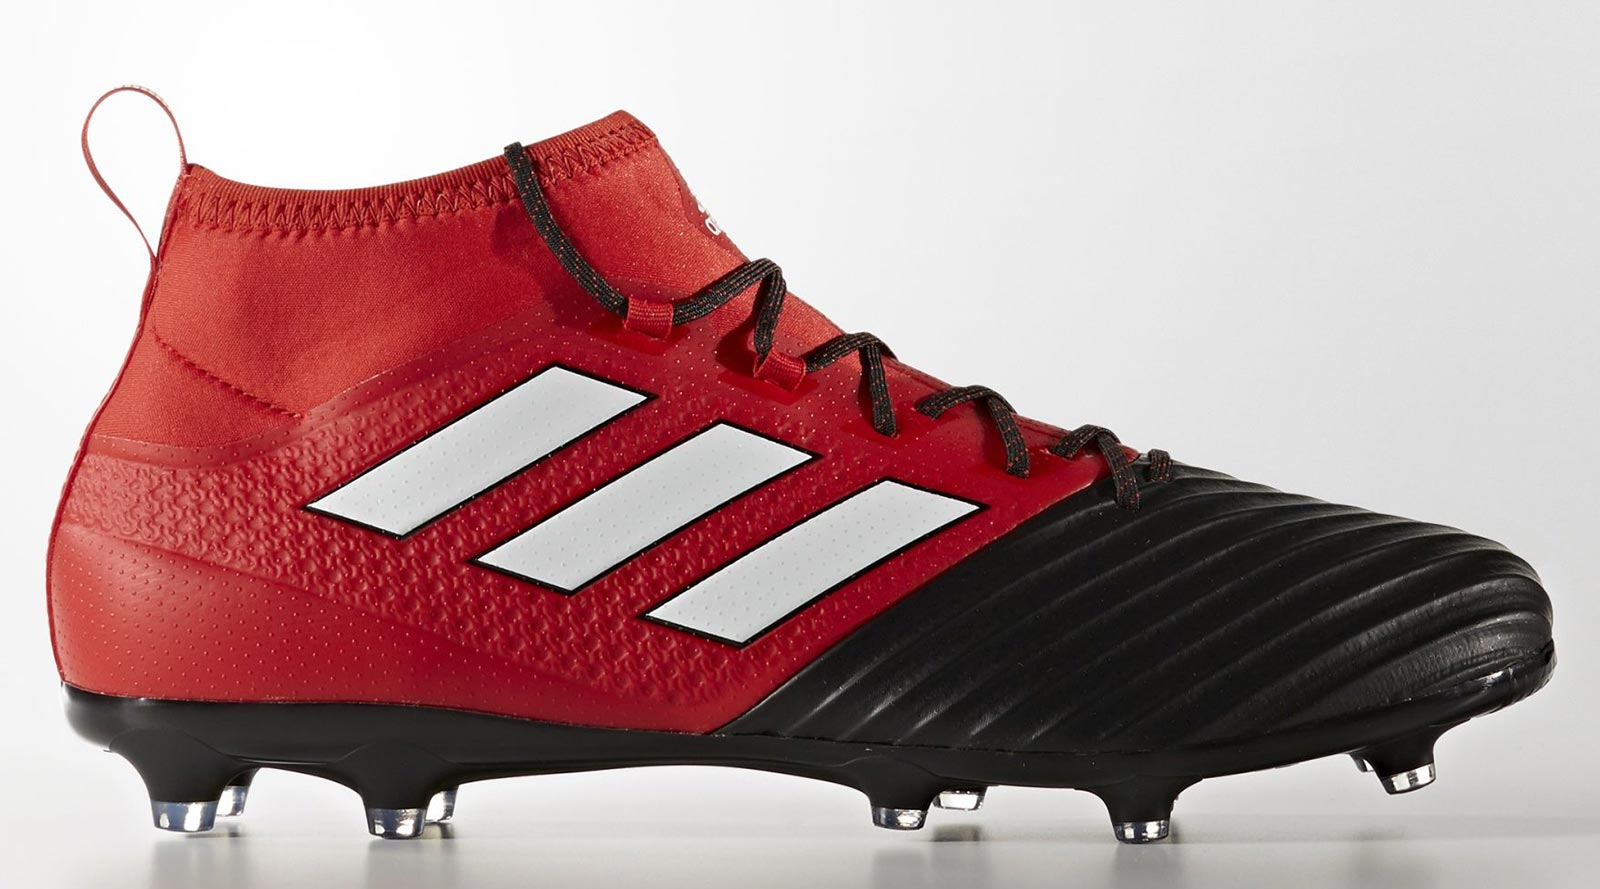 Compare All Adidas Ace 2017 Boots - Ace 17  PureControl vs Ace 17 1